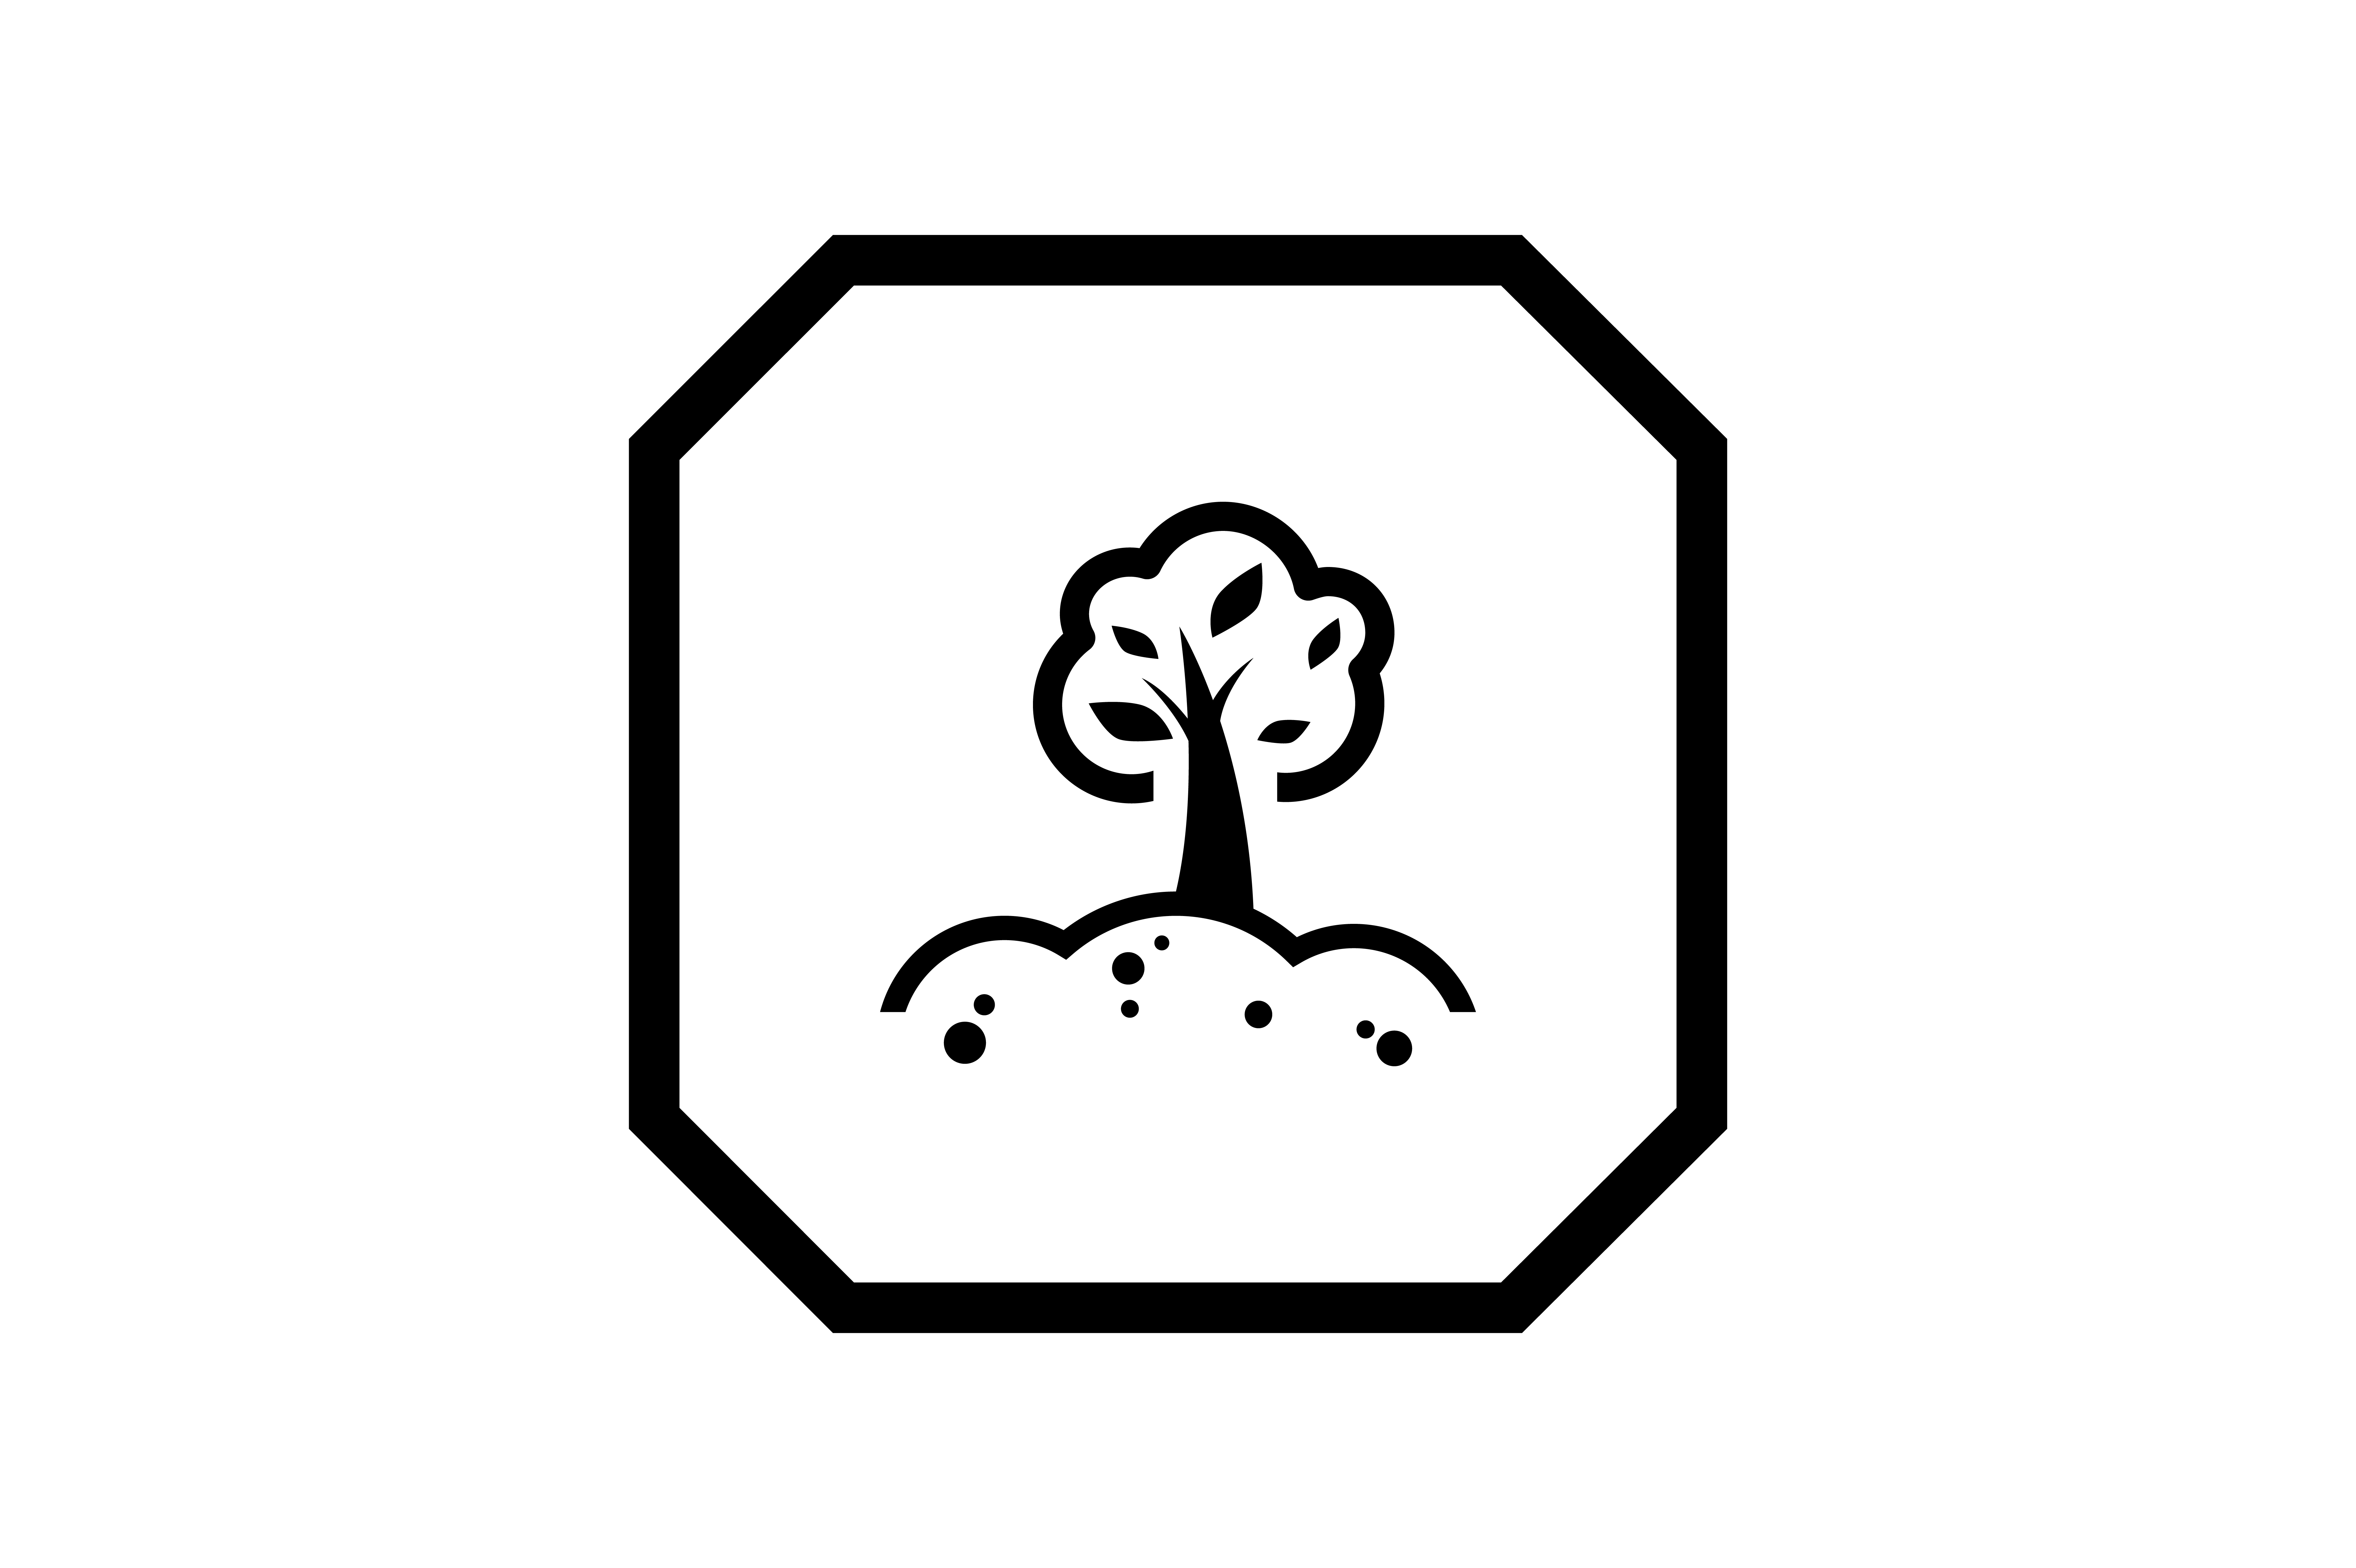 Download Free Farming Tree Icon Graphic By Zafreeloicon Creative Fabrica for Cricut Explore, Silhouette and other cutting machines.